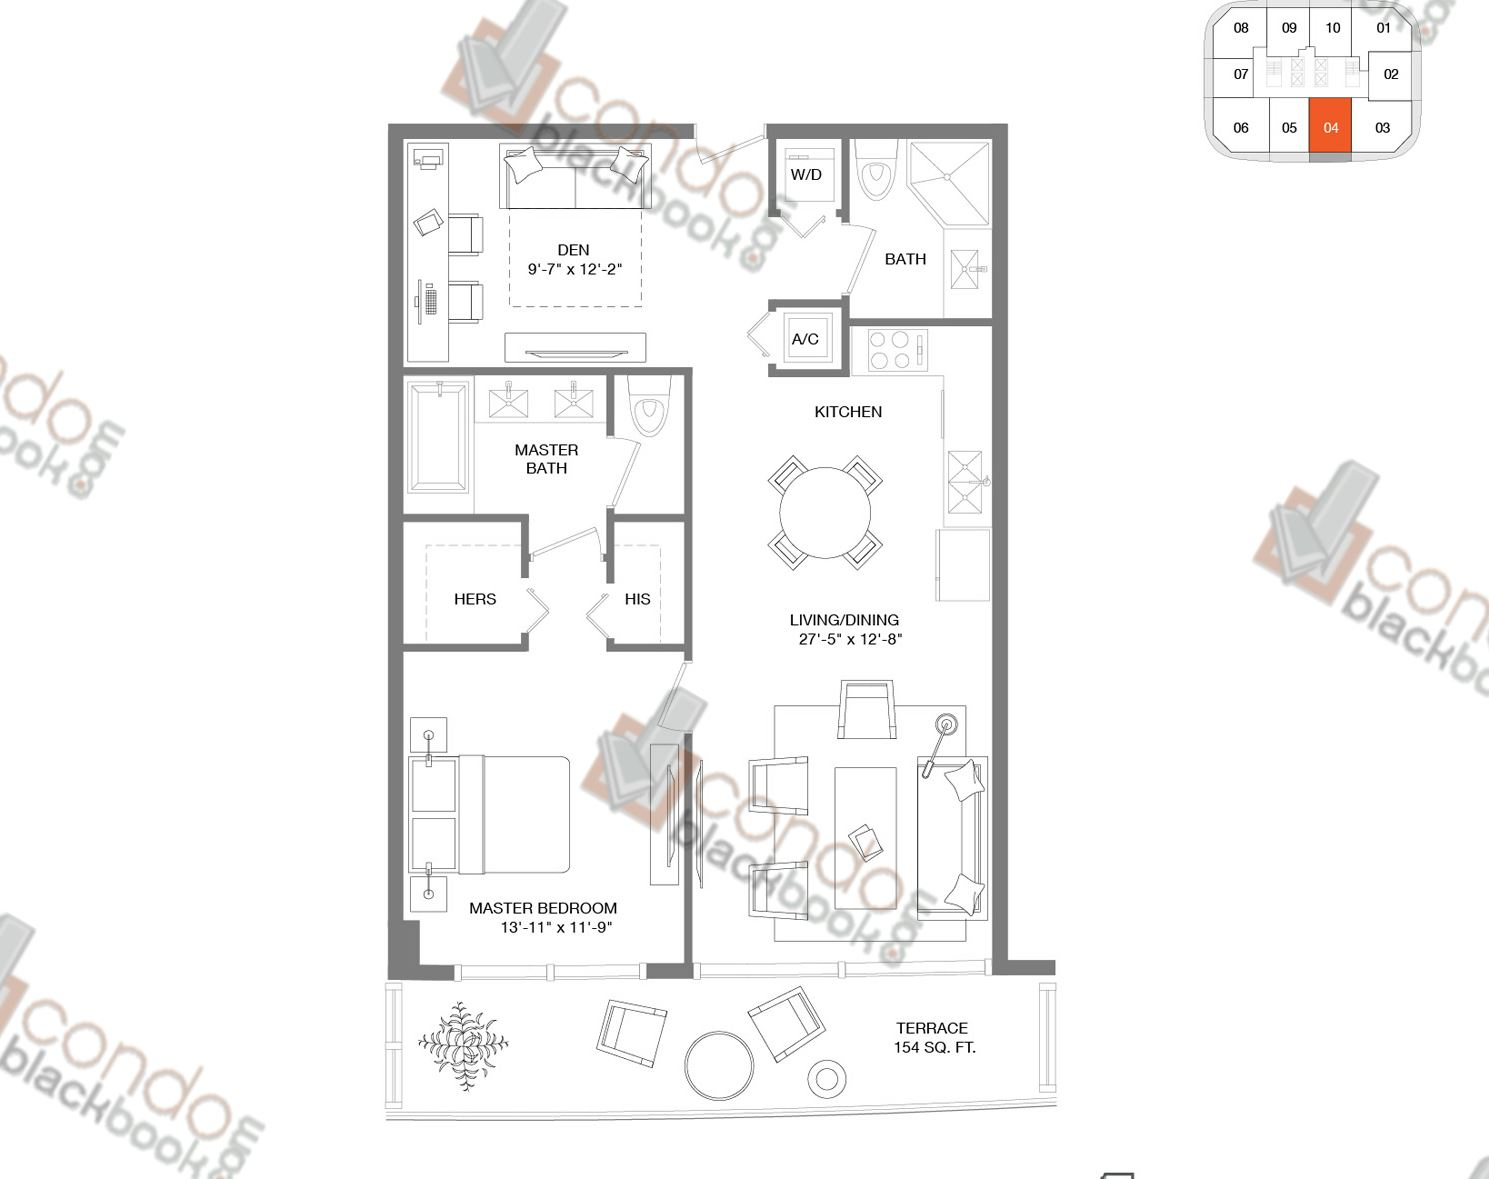 Floor plan for Brickell Heights East Tower Brickell Miami, model Residence 04, line 04, 1/2+DEN bedrooms, 960 sq ft